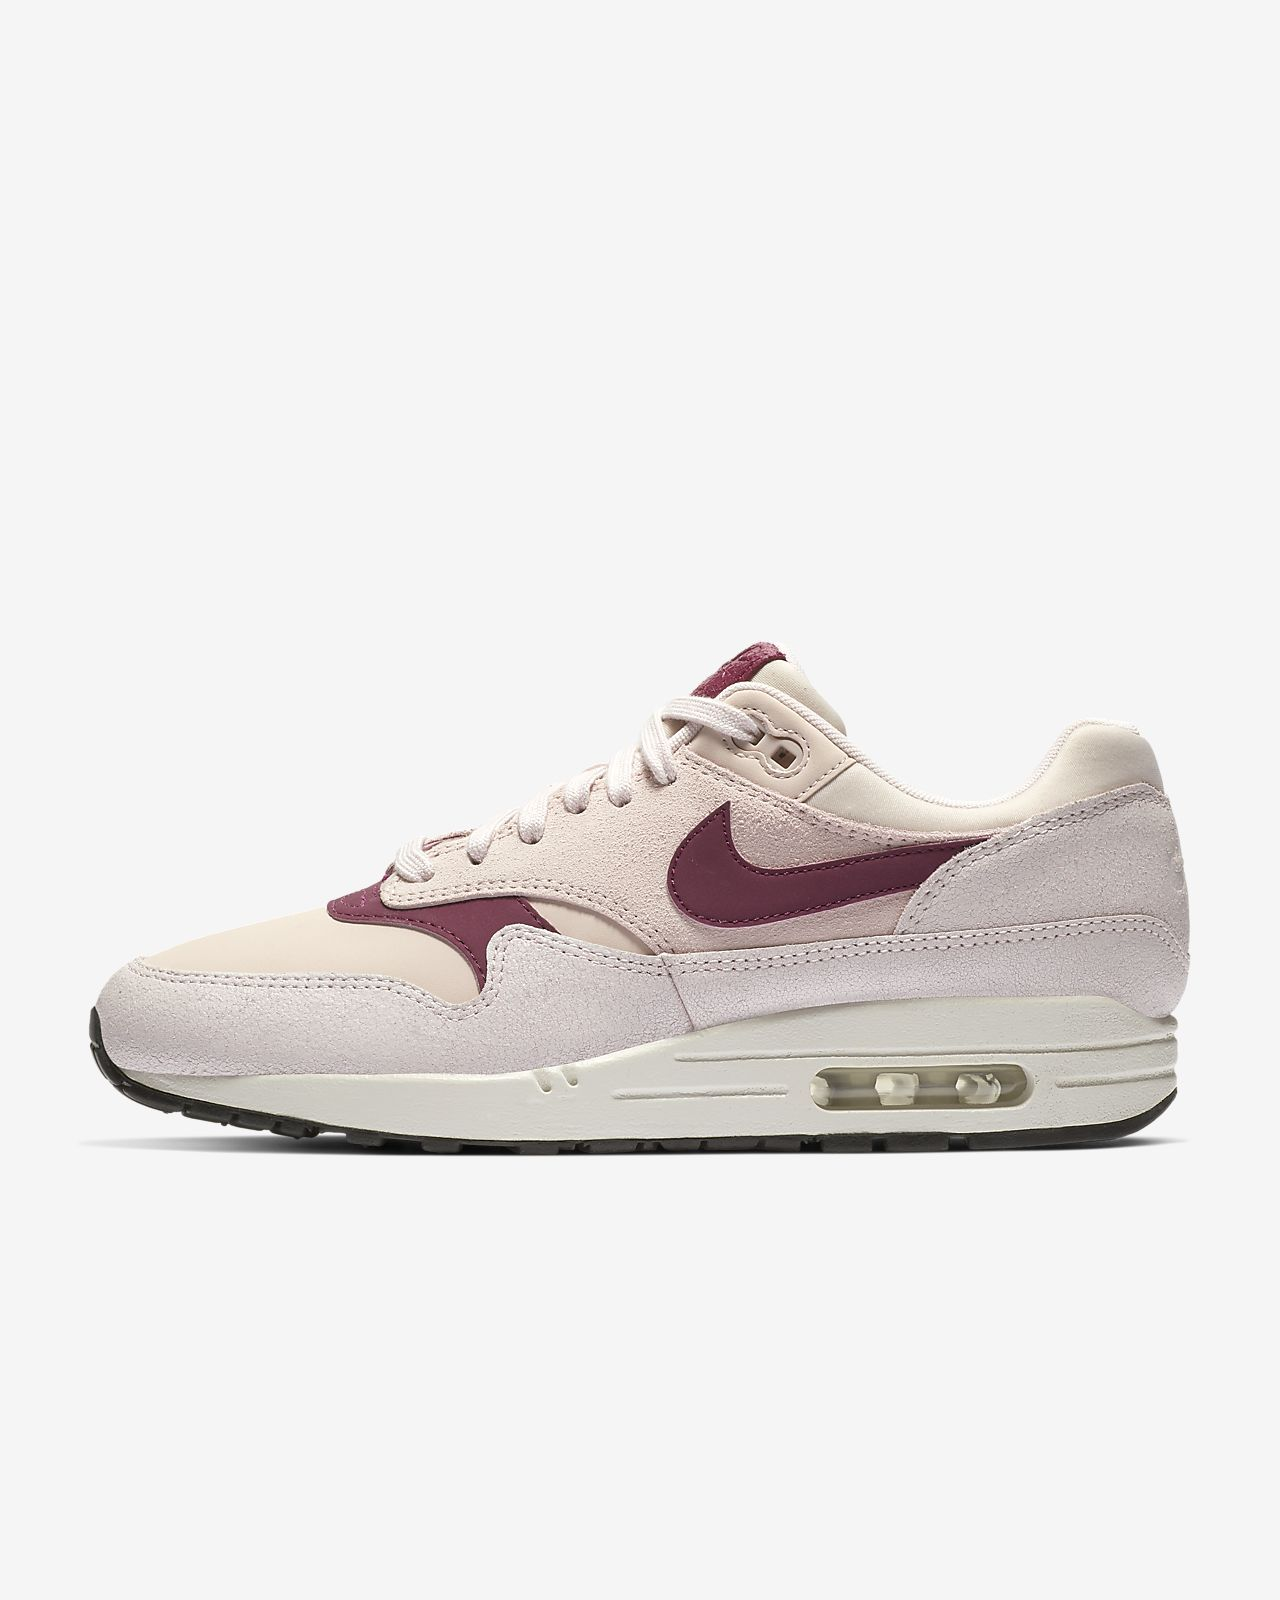 new product 62c2a b325f ... Nike Air Max 1 Premium Zapatillas - Mujer